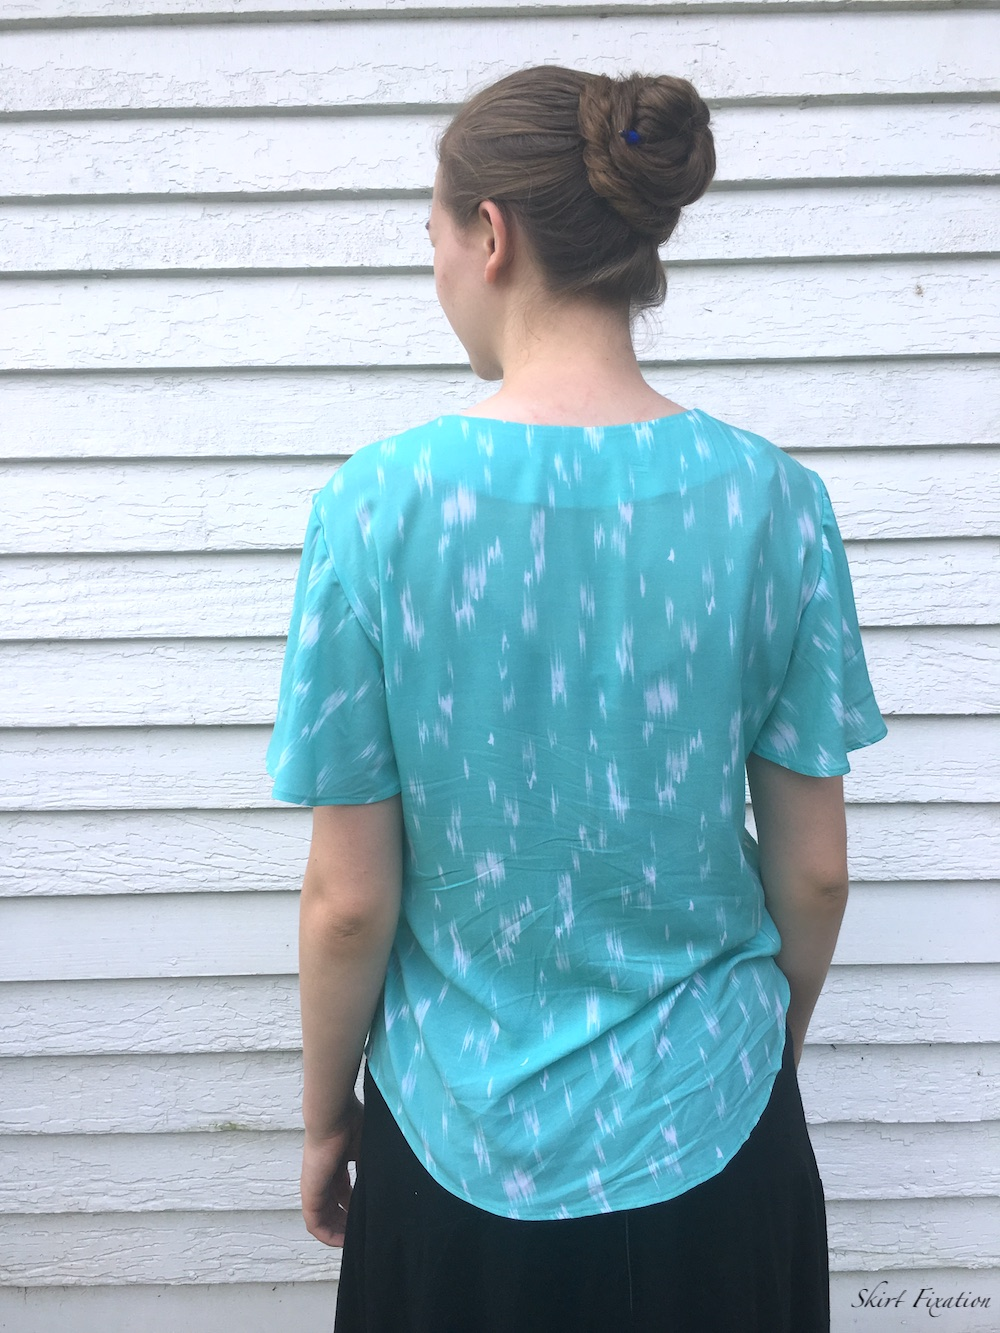 Lucerne Blouses sewn and reviewed by Skirt Fixation